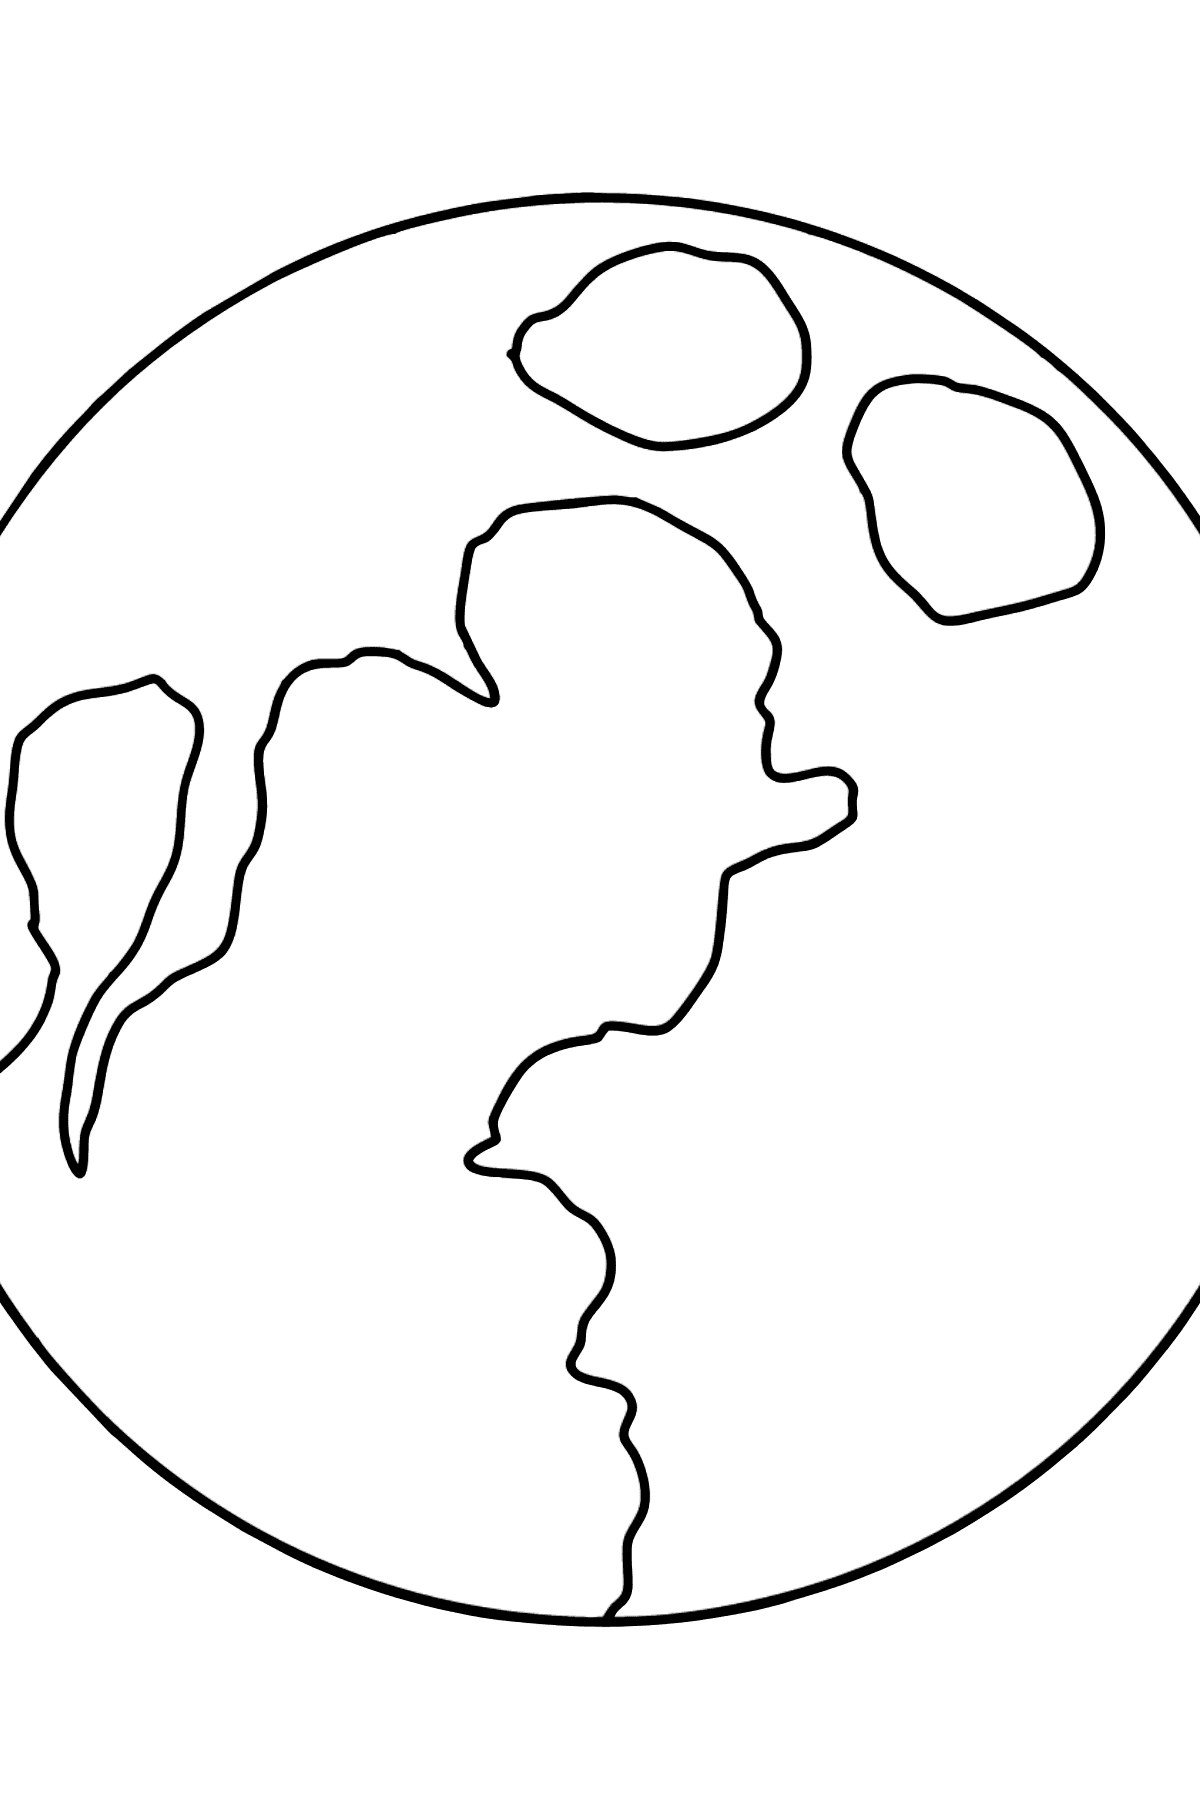 Moon coloring page - Coloring Pages for Kids